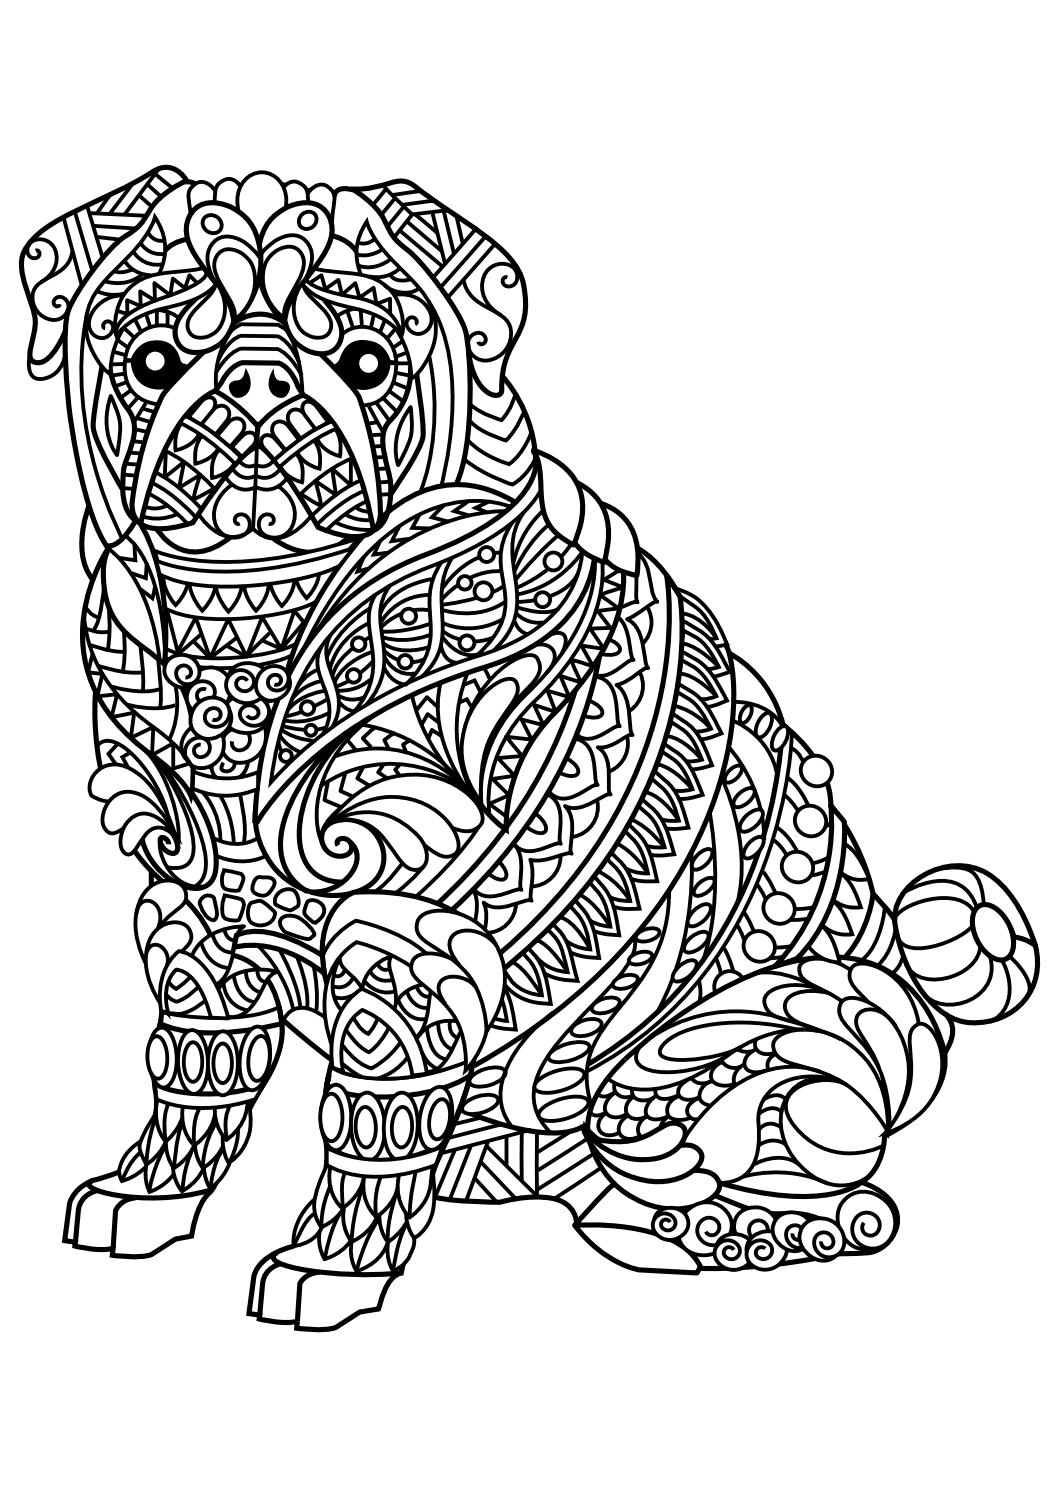 printable coloring pages of wolves Collection-Animal coloring pages pdf Animal Coloring Pages is a free adult coloring book with 20 different animal pictures to color horse coloring pages dog cat 1-m